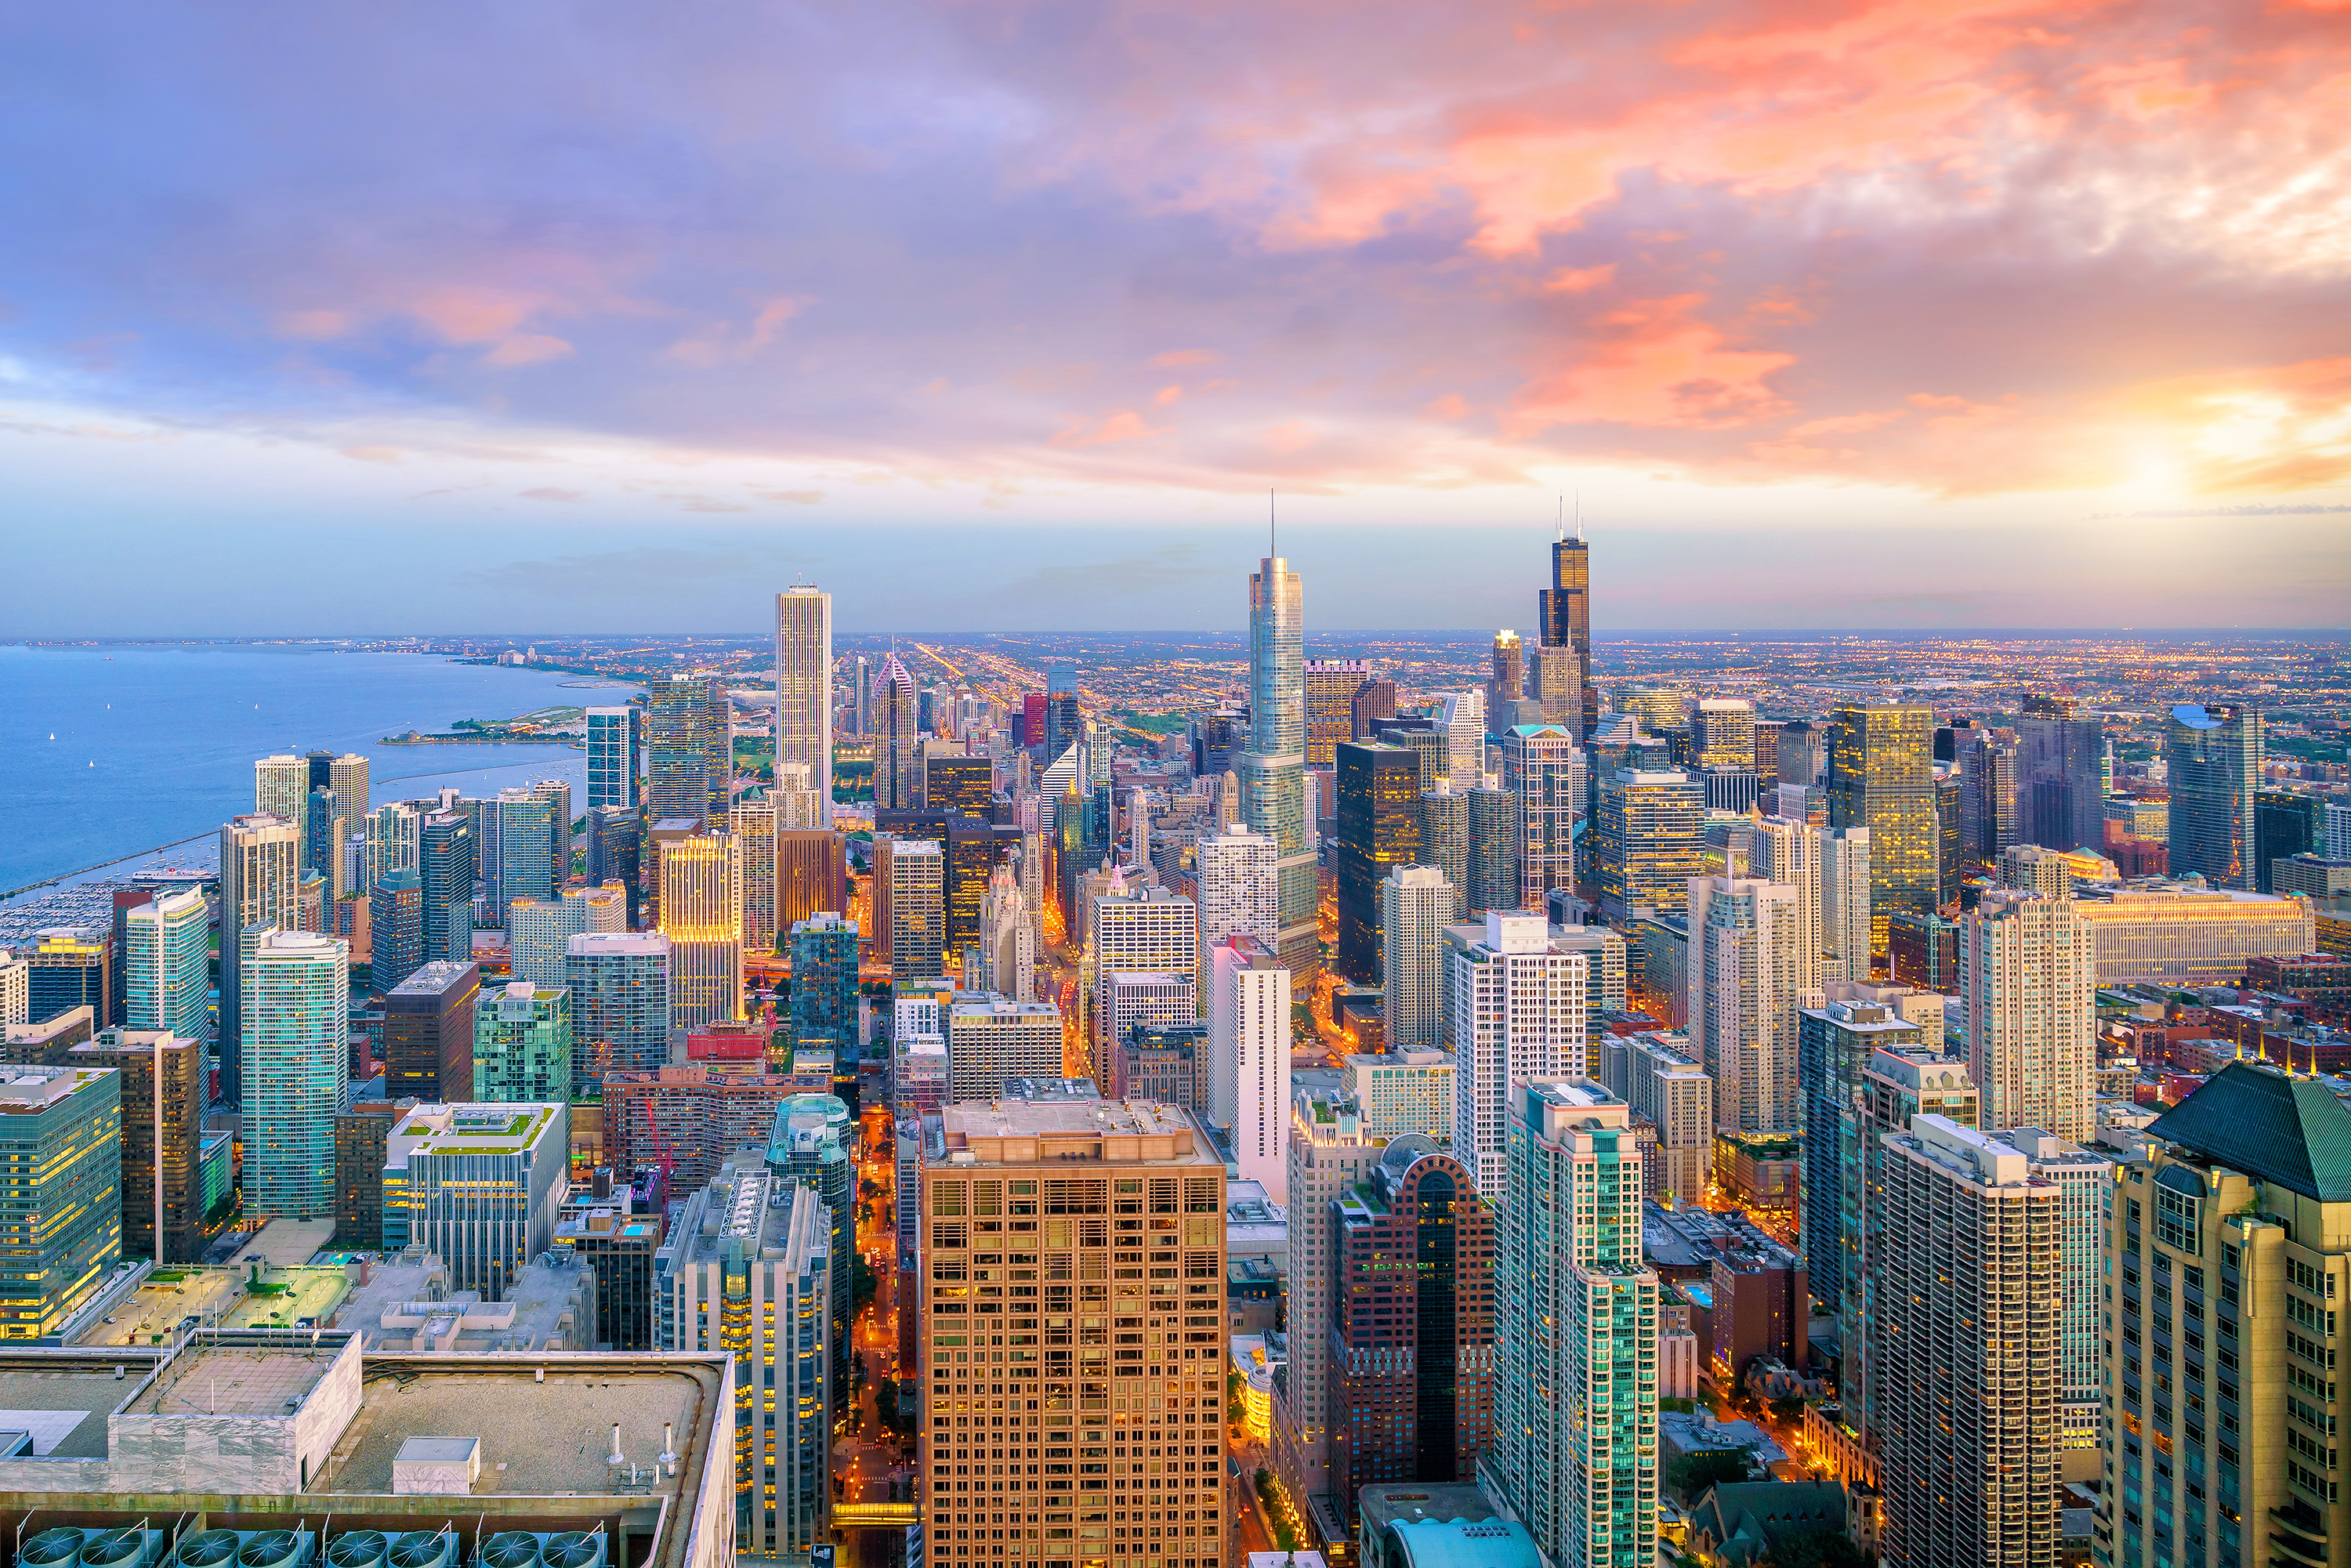 Chicago's high-rise boom makes 2017 a record year for development